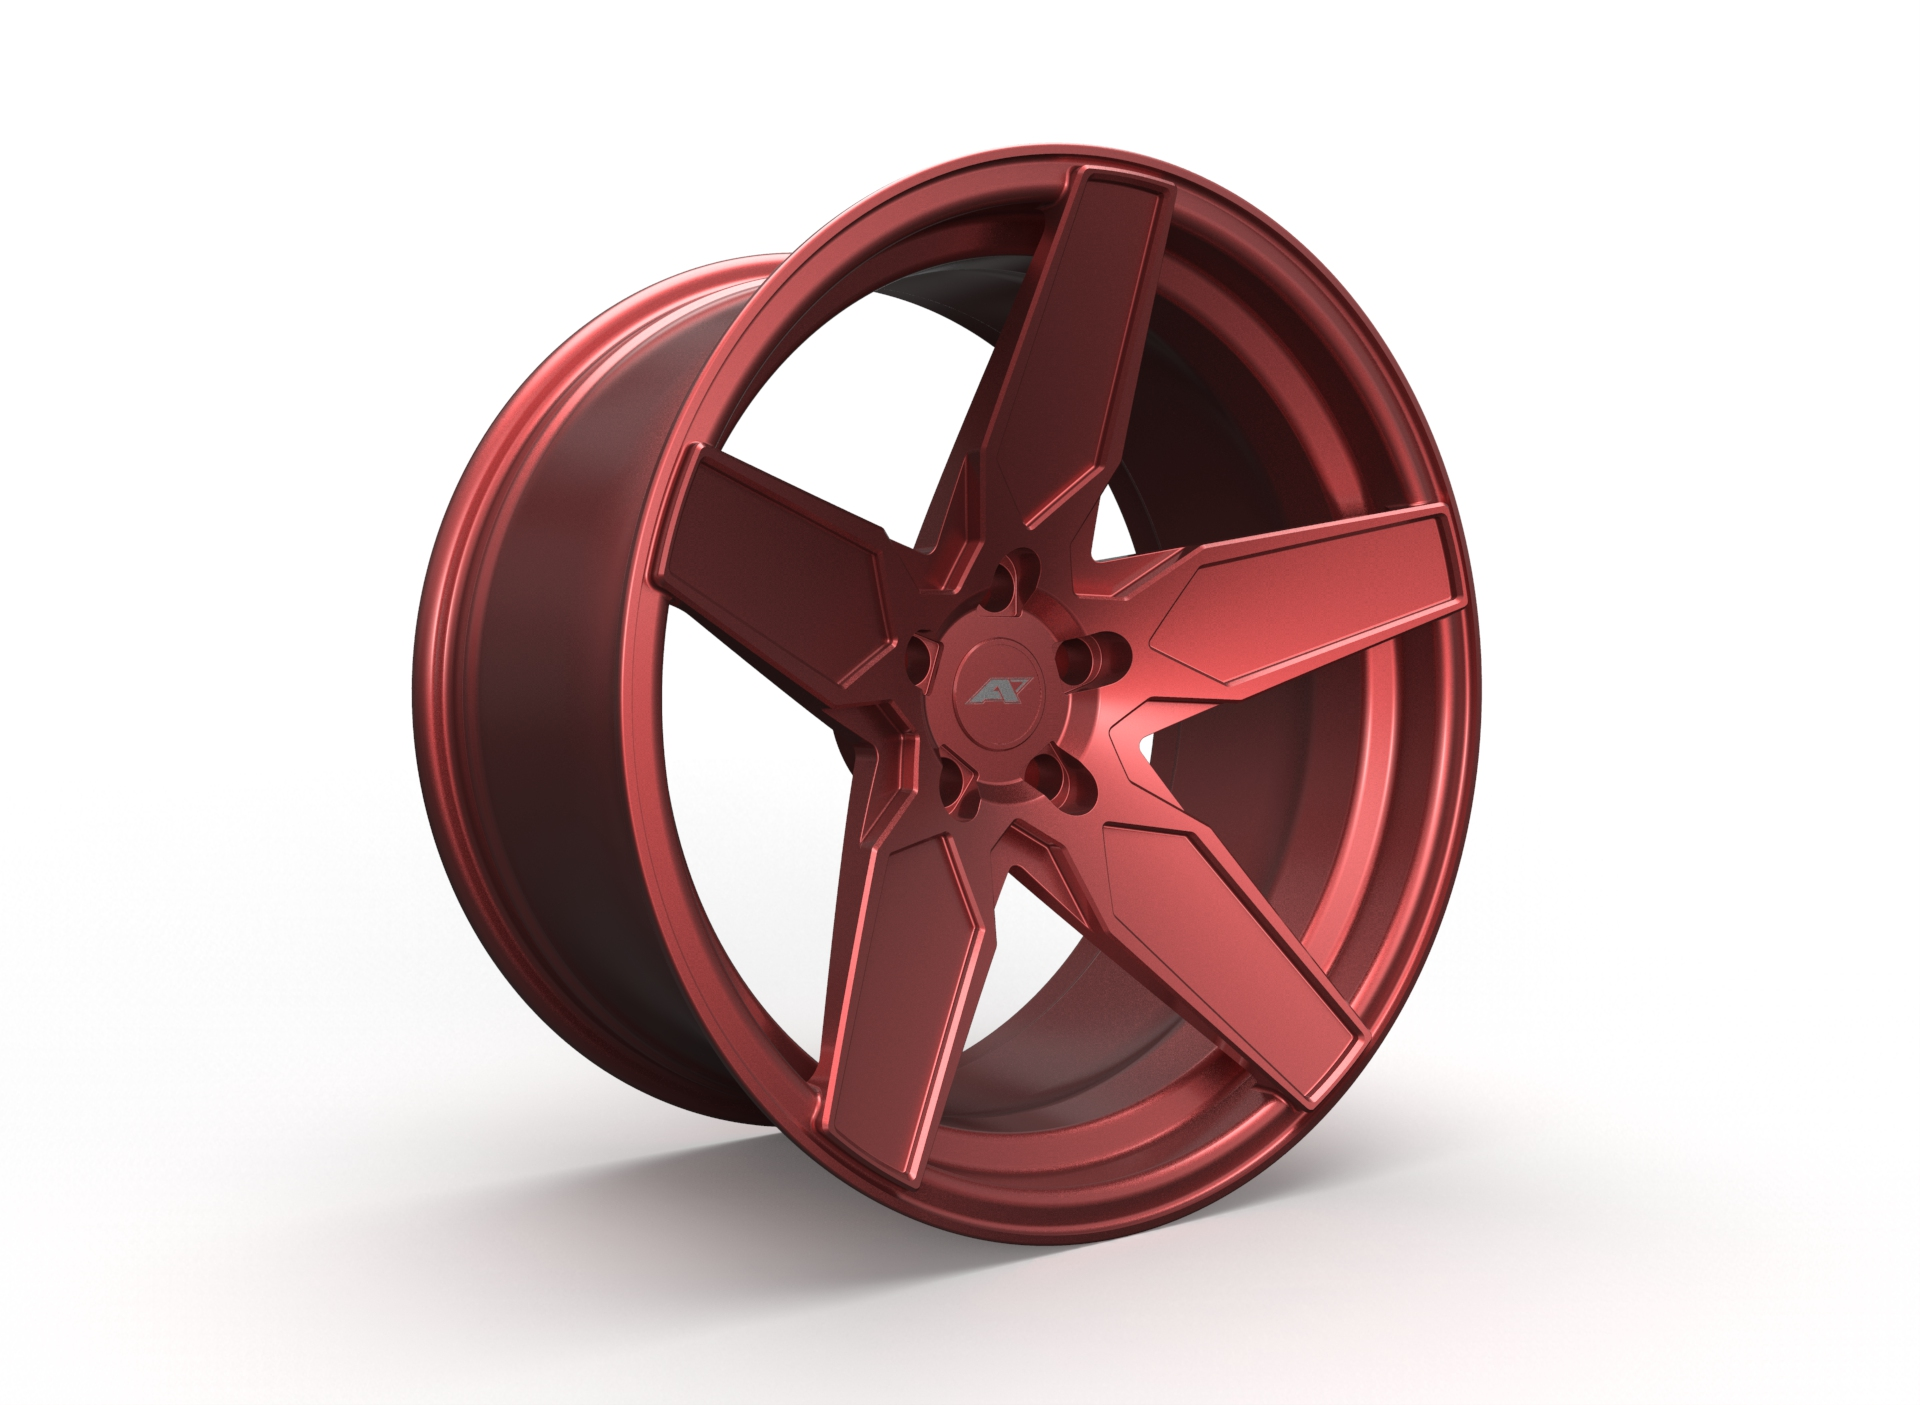 alphamale_wheels_4.129.jpg